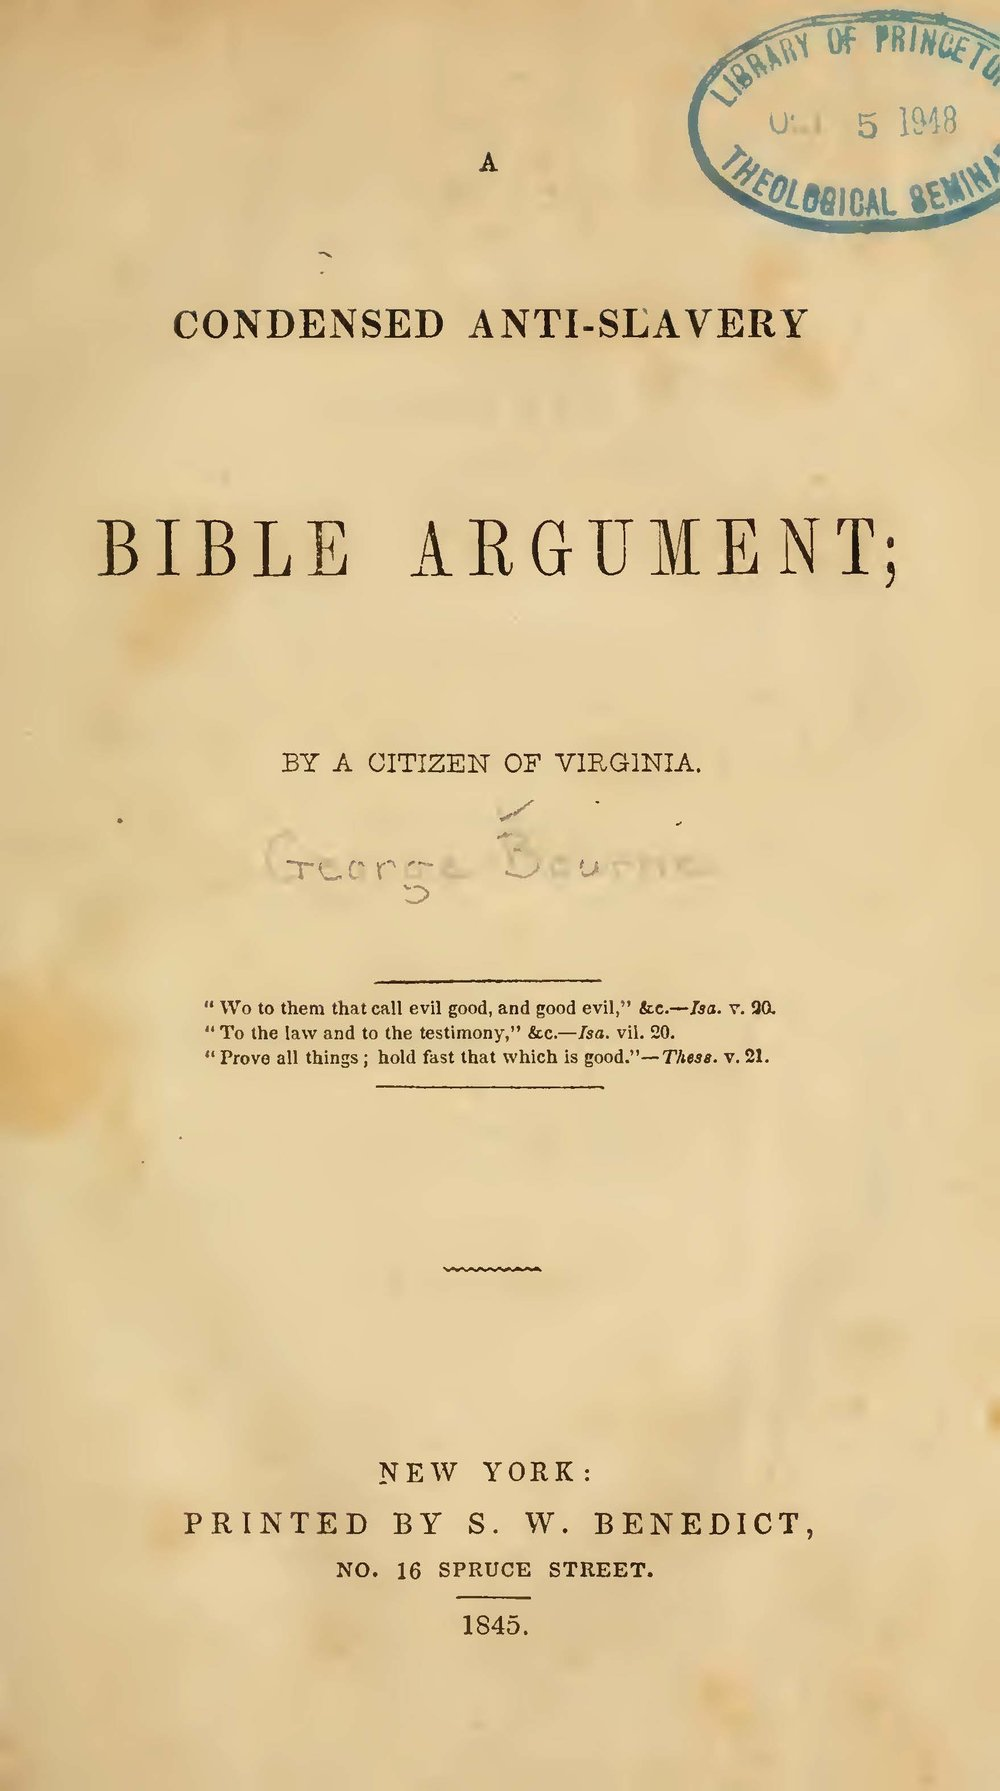 Bourne, George, A Condensed Anti-Slavery Bible Argument Title Page.jpg